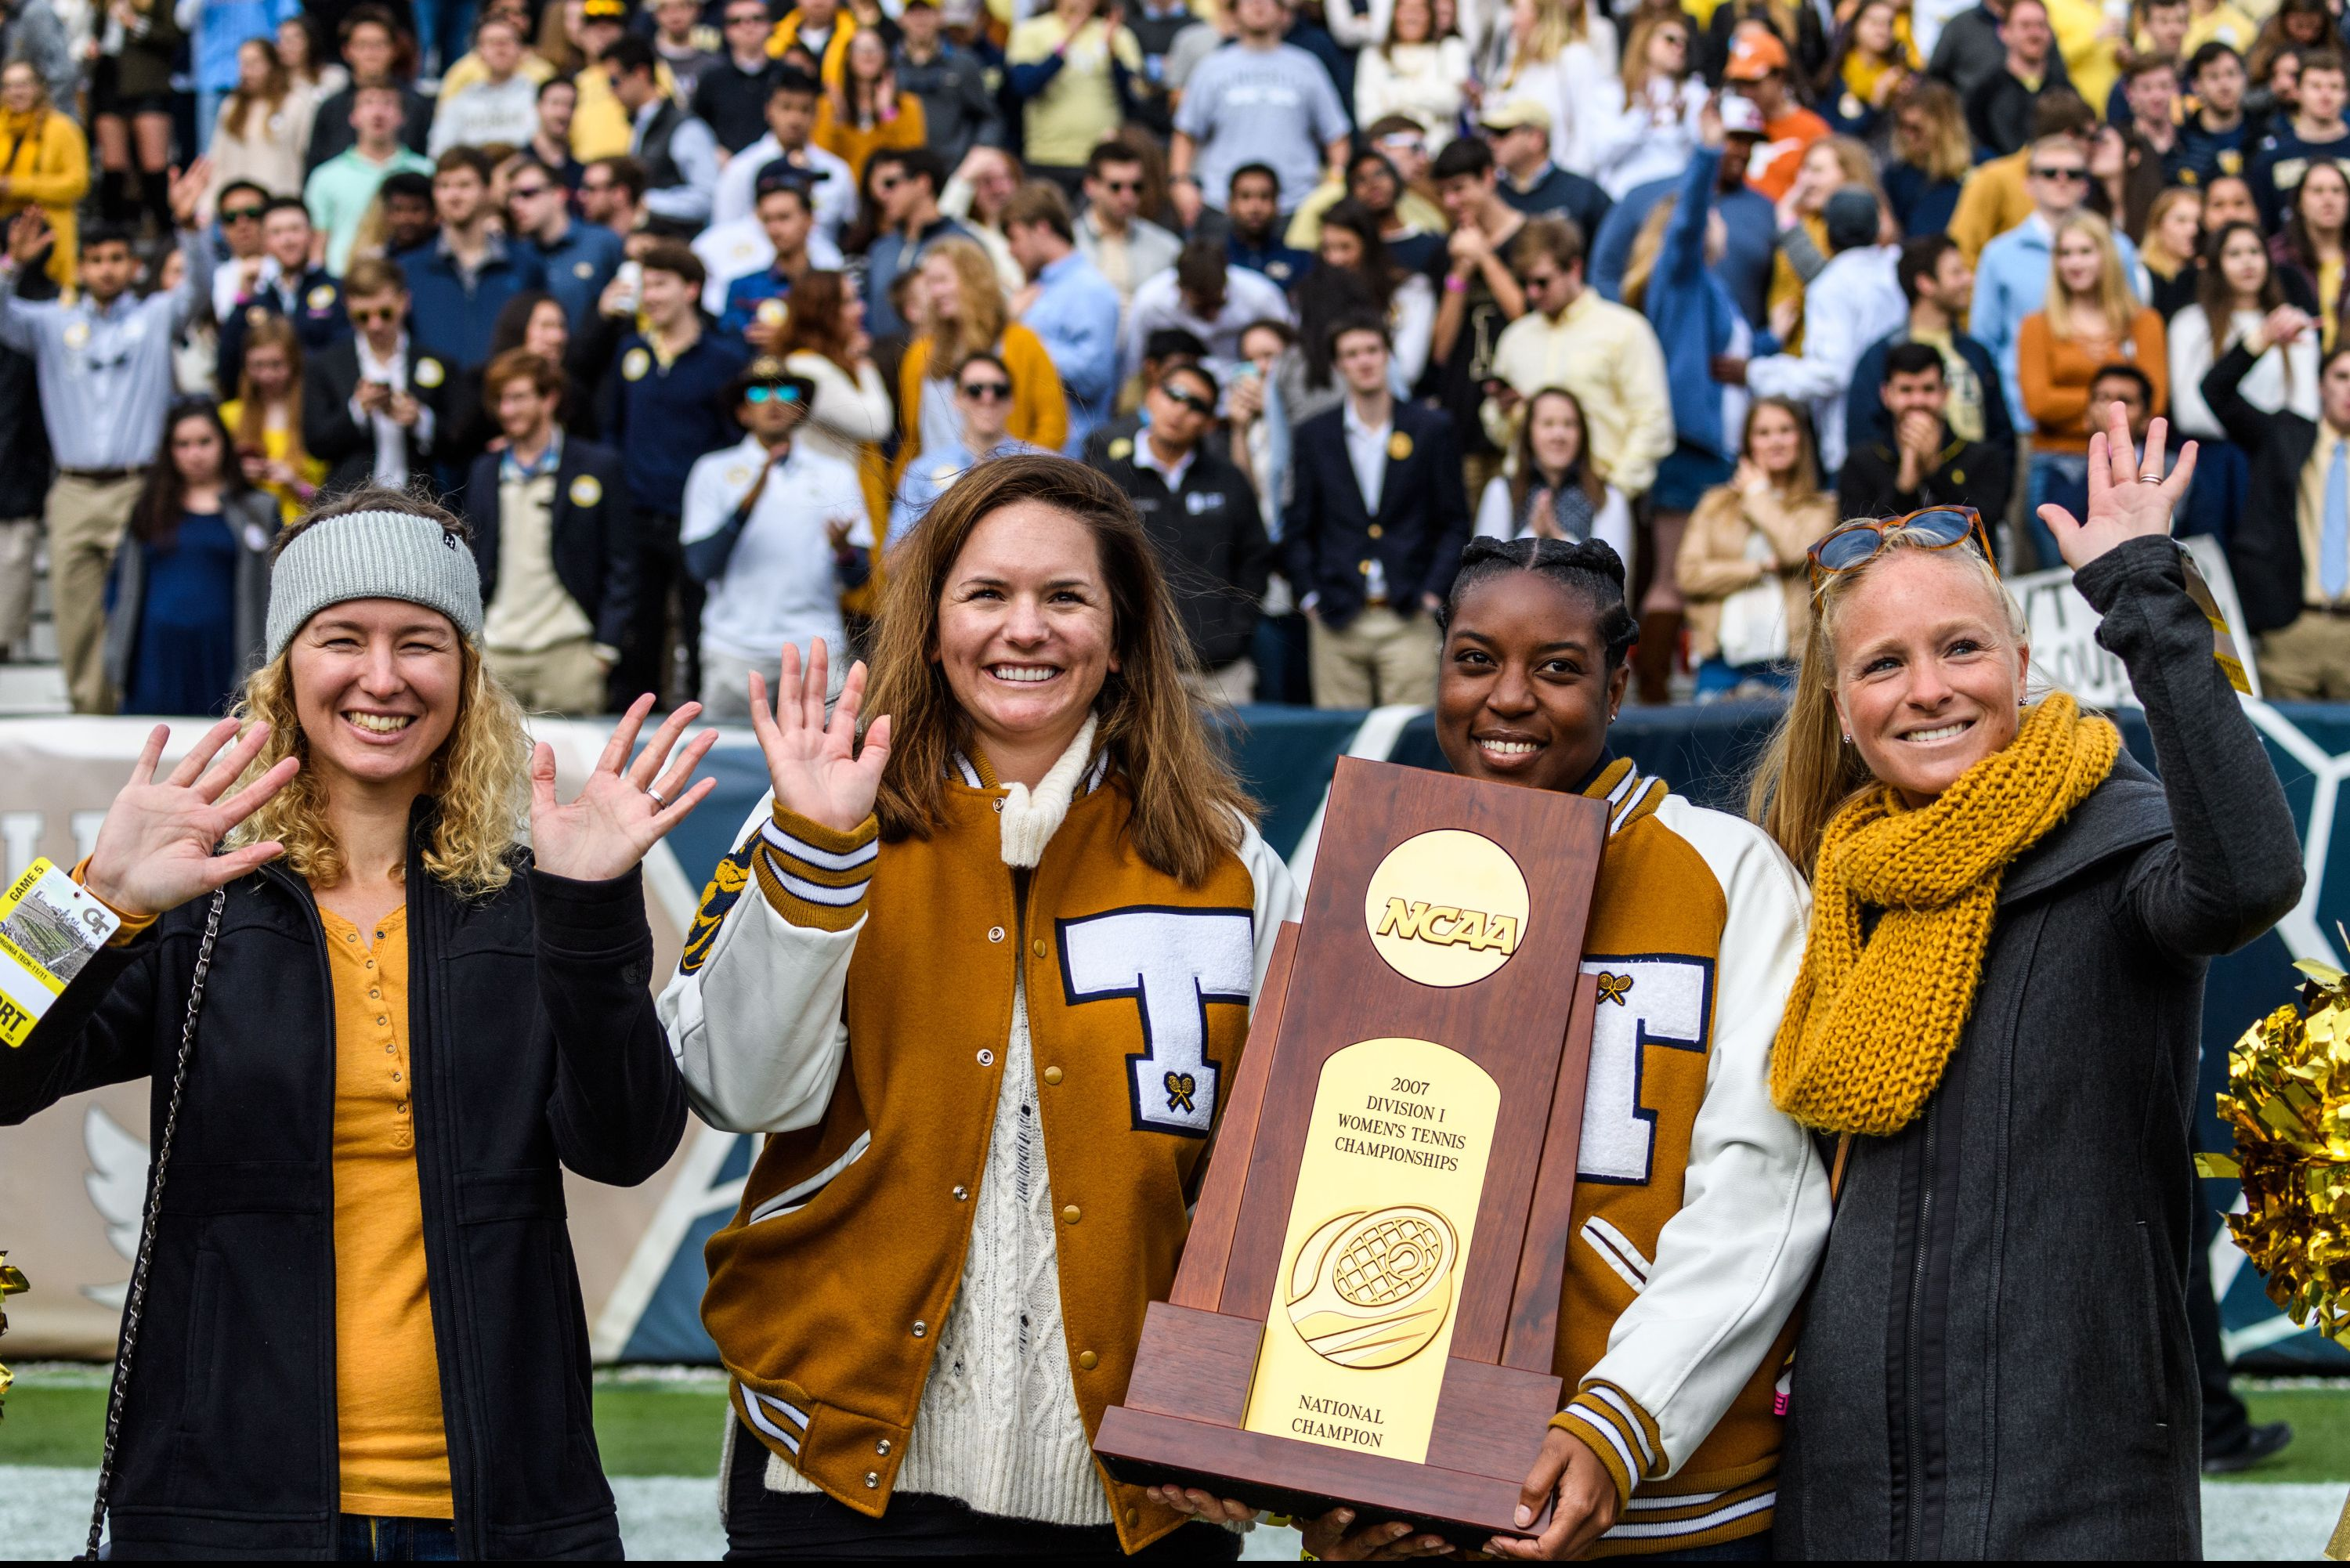 The 2007 National Championship Women's Tennis team was honored during the game for the 10th anniversary of their national championship. Kristi North (Miller), Alison Silverio, Whitney McCray, and Christy Lynch (Striplin) were at today's game